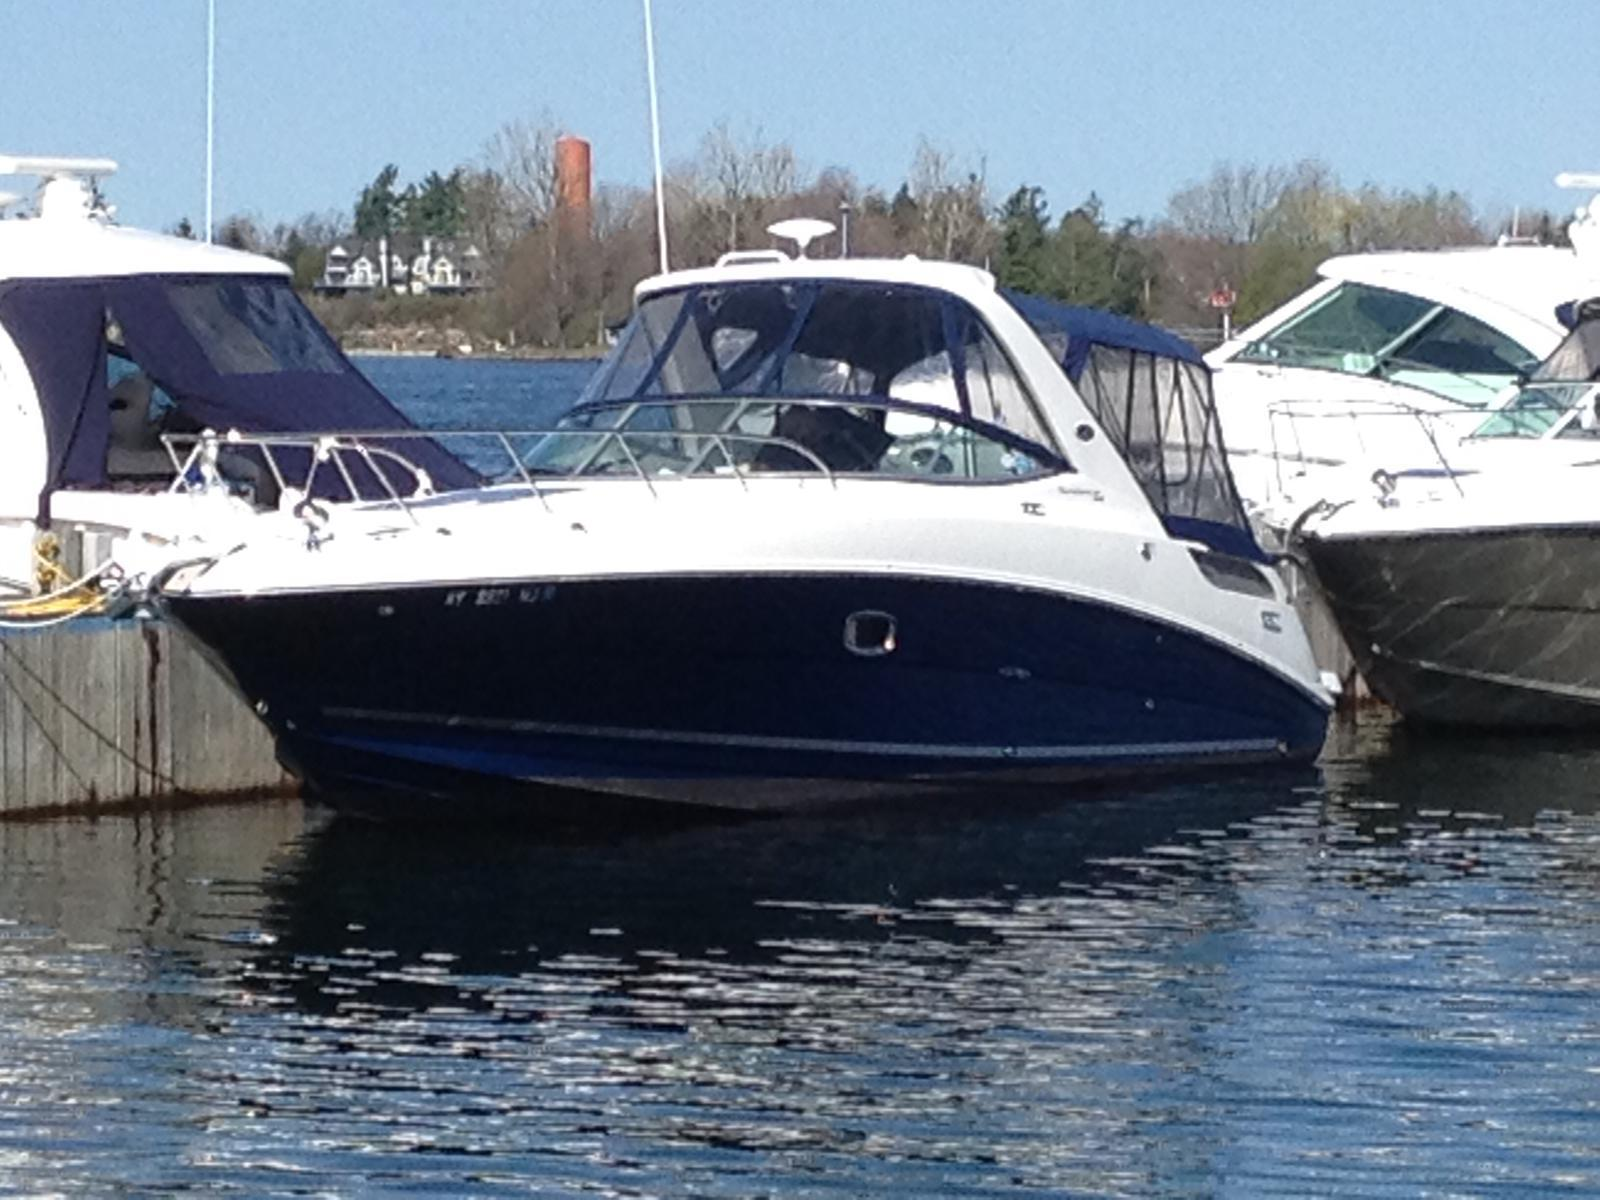 USED 2013 Sea Ray 310 Sundancer - Hutchinson's Boat Works